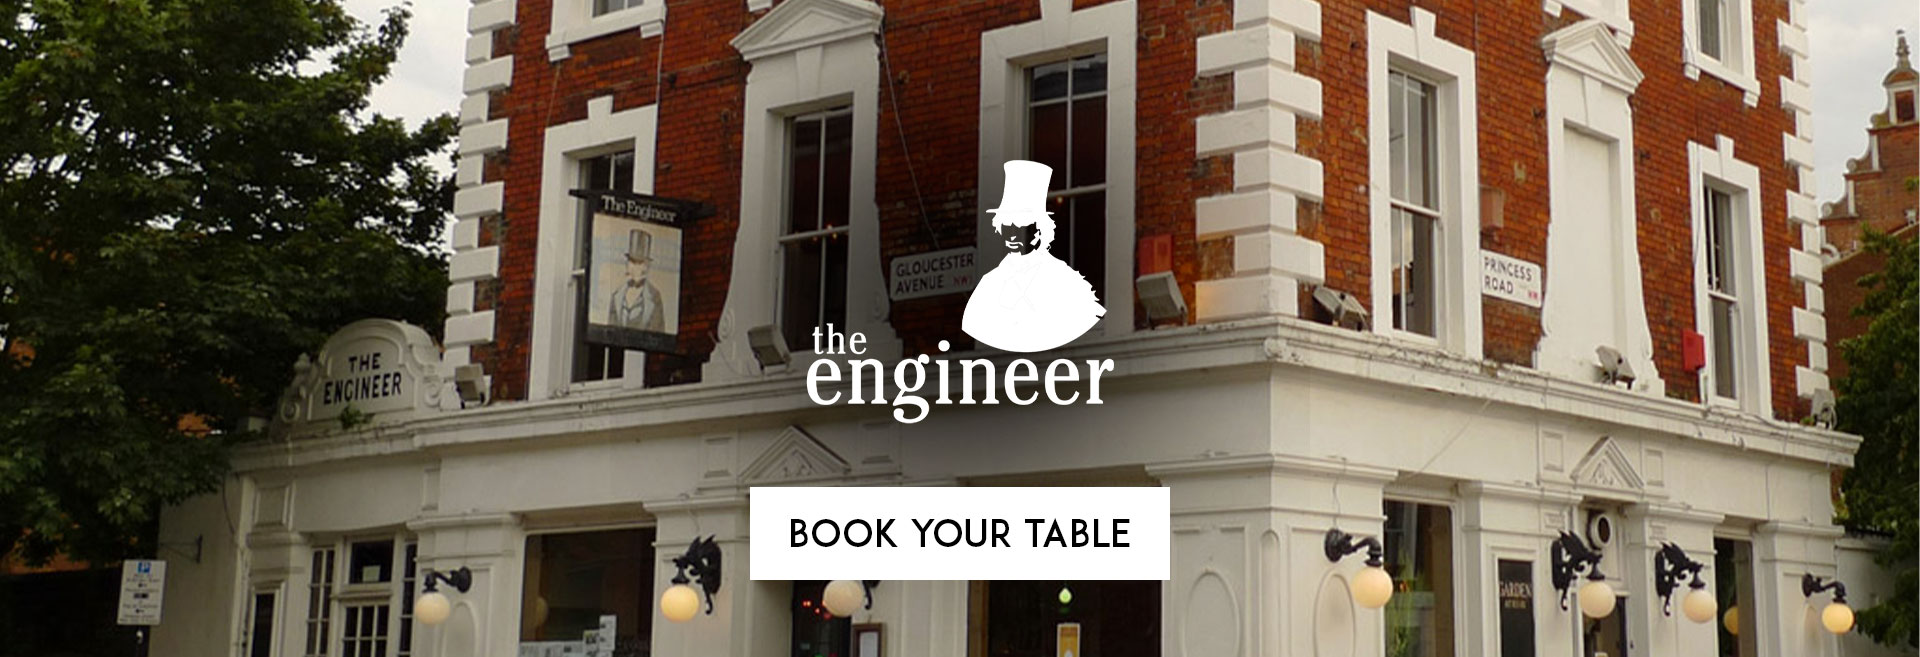 Book Your Table The Engineer